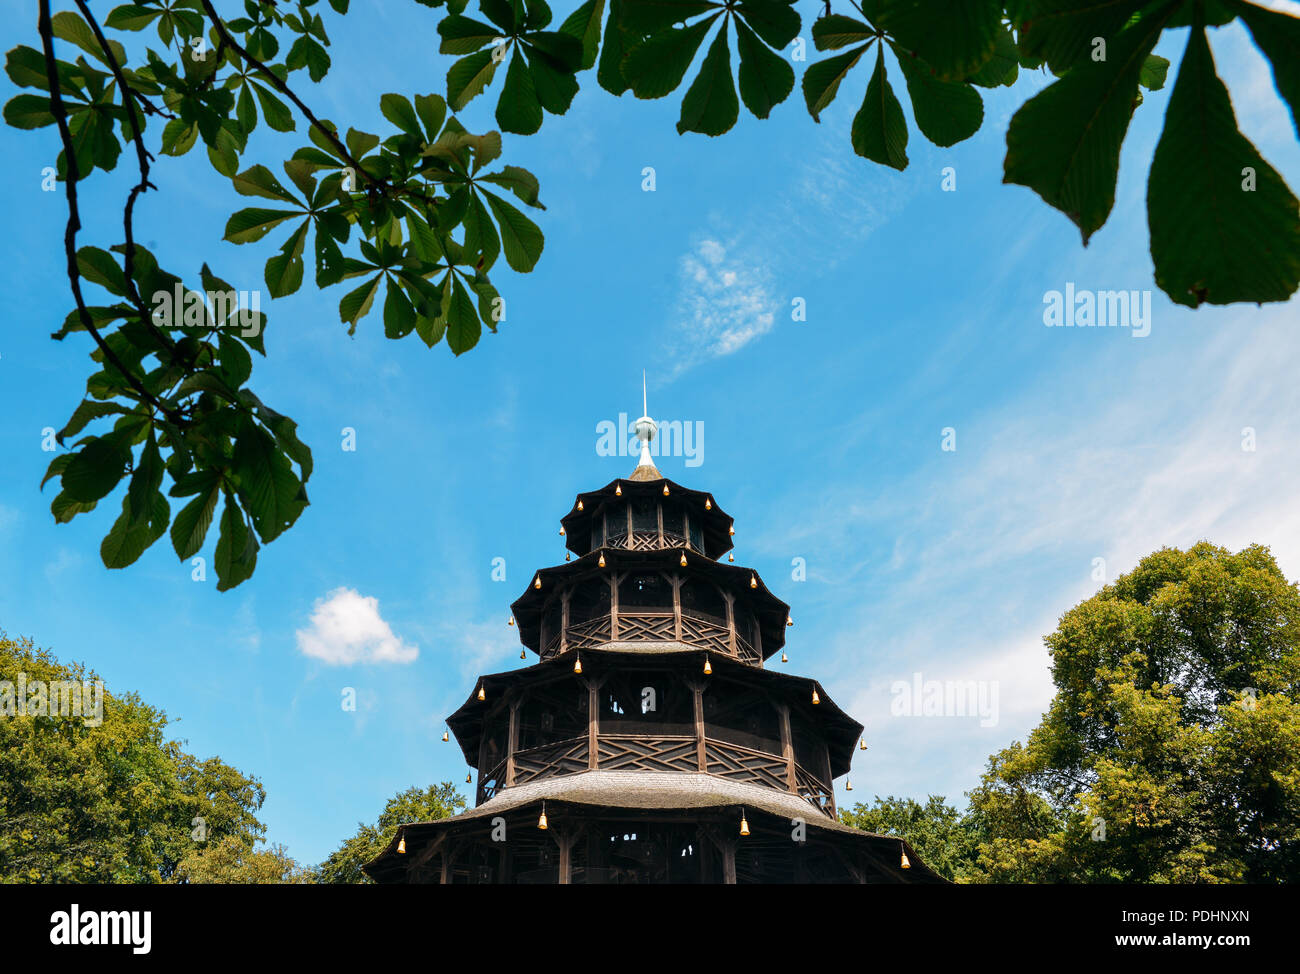 Munich, Germany - July 29, 2018: Frame of Chinese tower in English gardens in Munich in Bavaria in Germany with blue sky - Stock Image